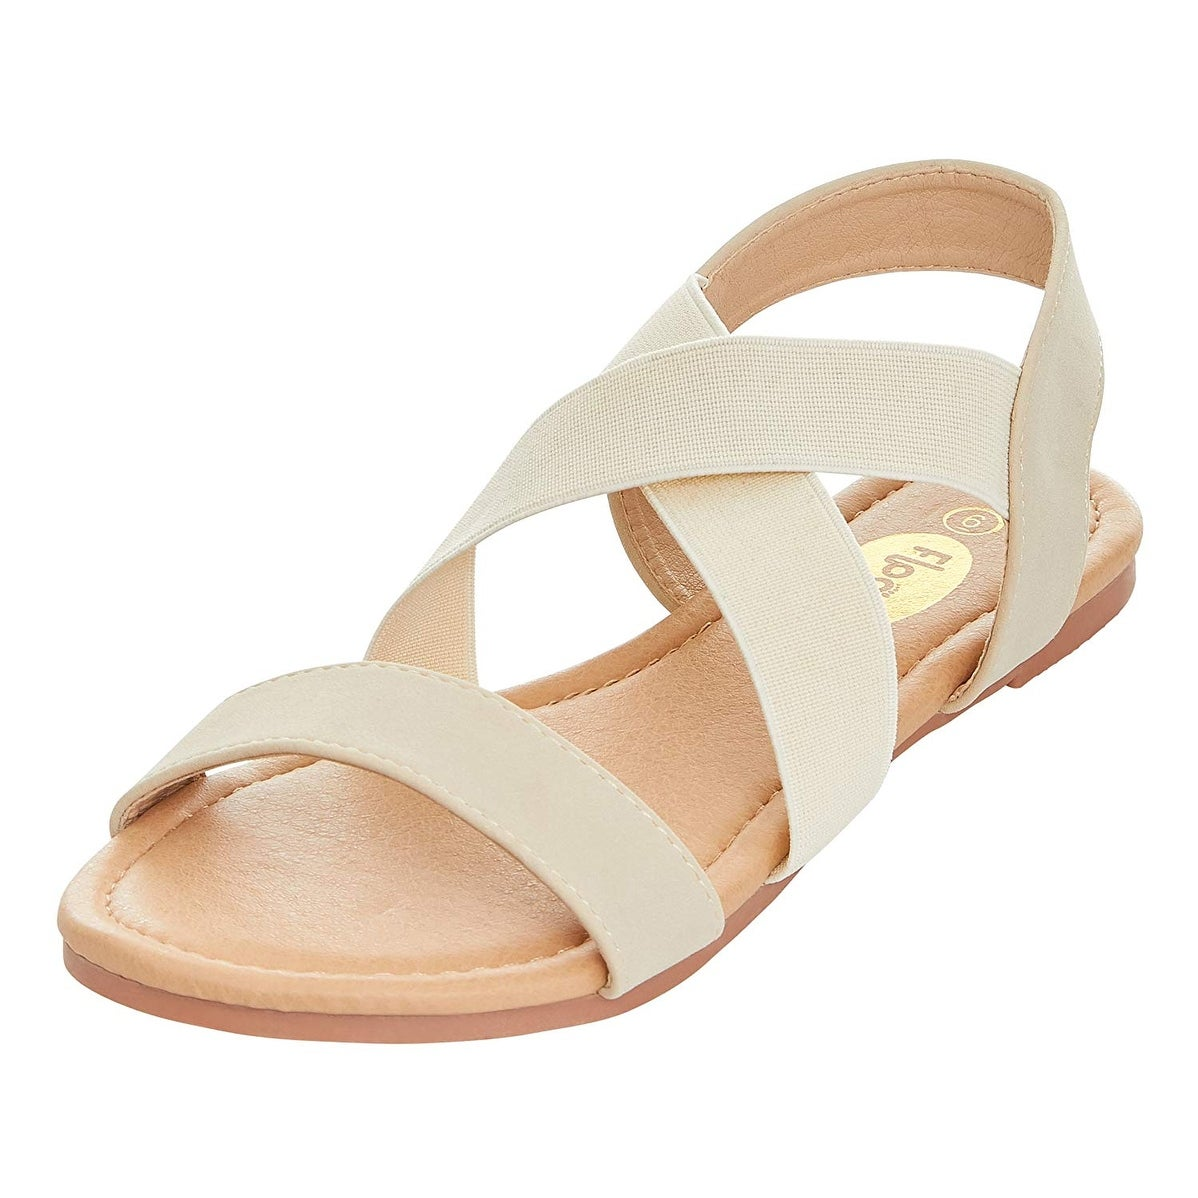 c55383cca62 Shop Floopi Womens Summer Criss Cross Slingback Elastic Strap Flat Sandal -  10 - Ships To Canada - Overstock - 23434888